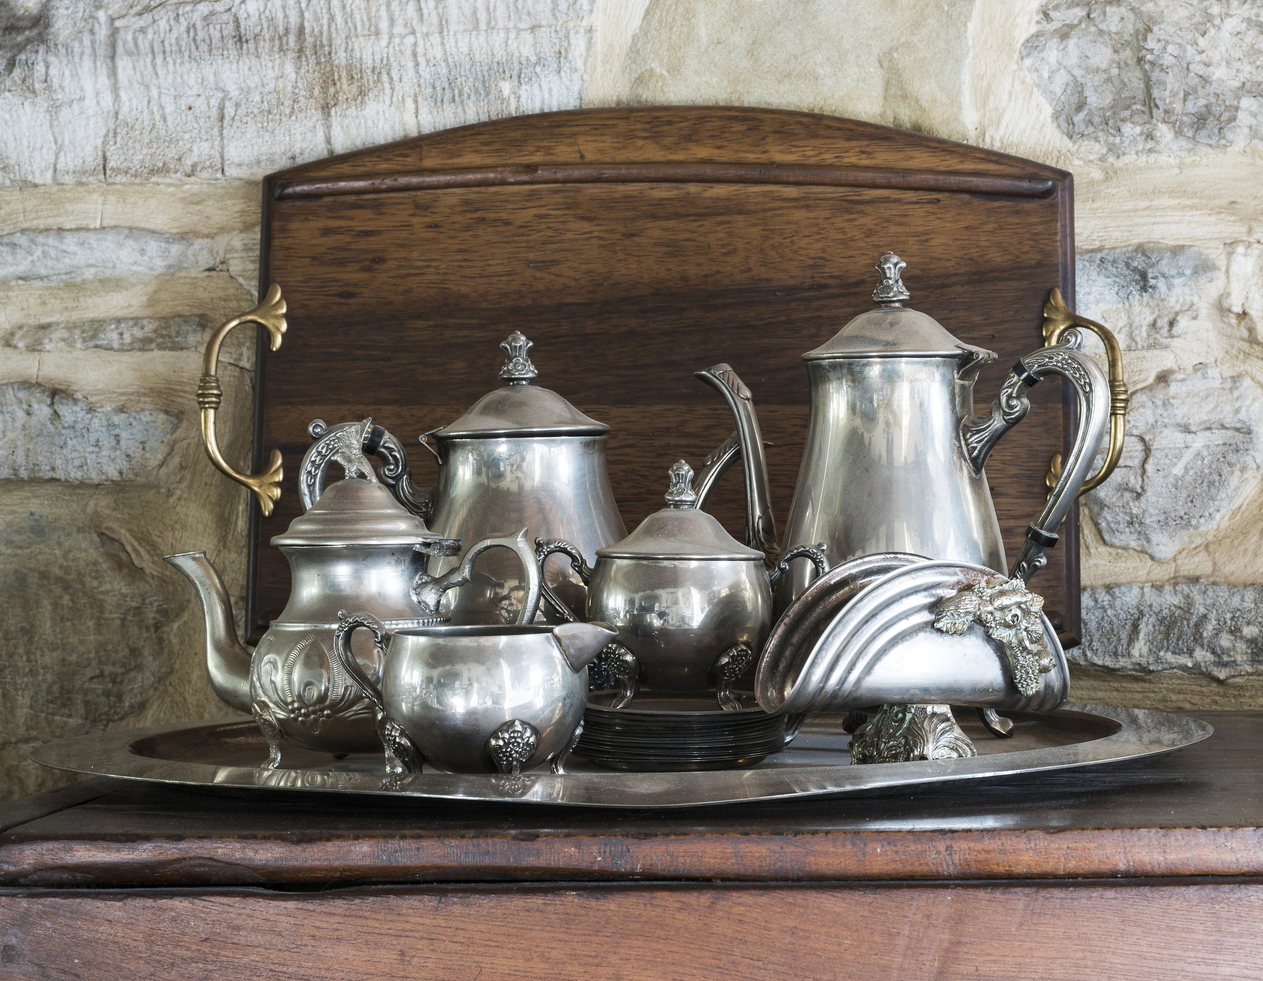 How To Find The Value Of Antique Silver